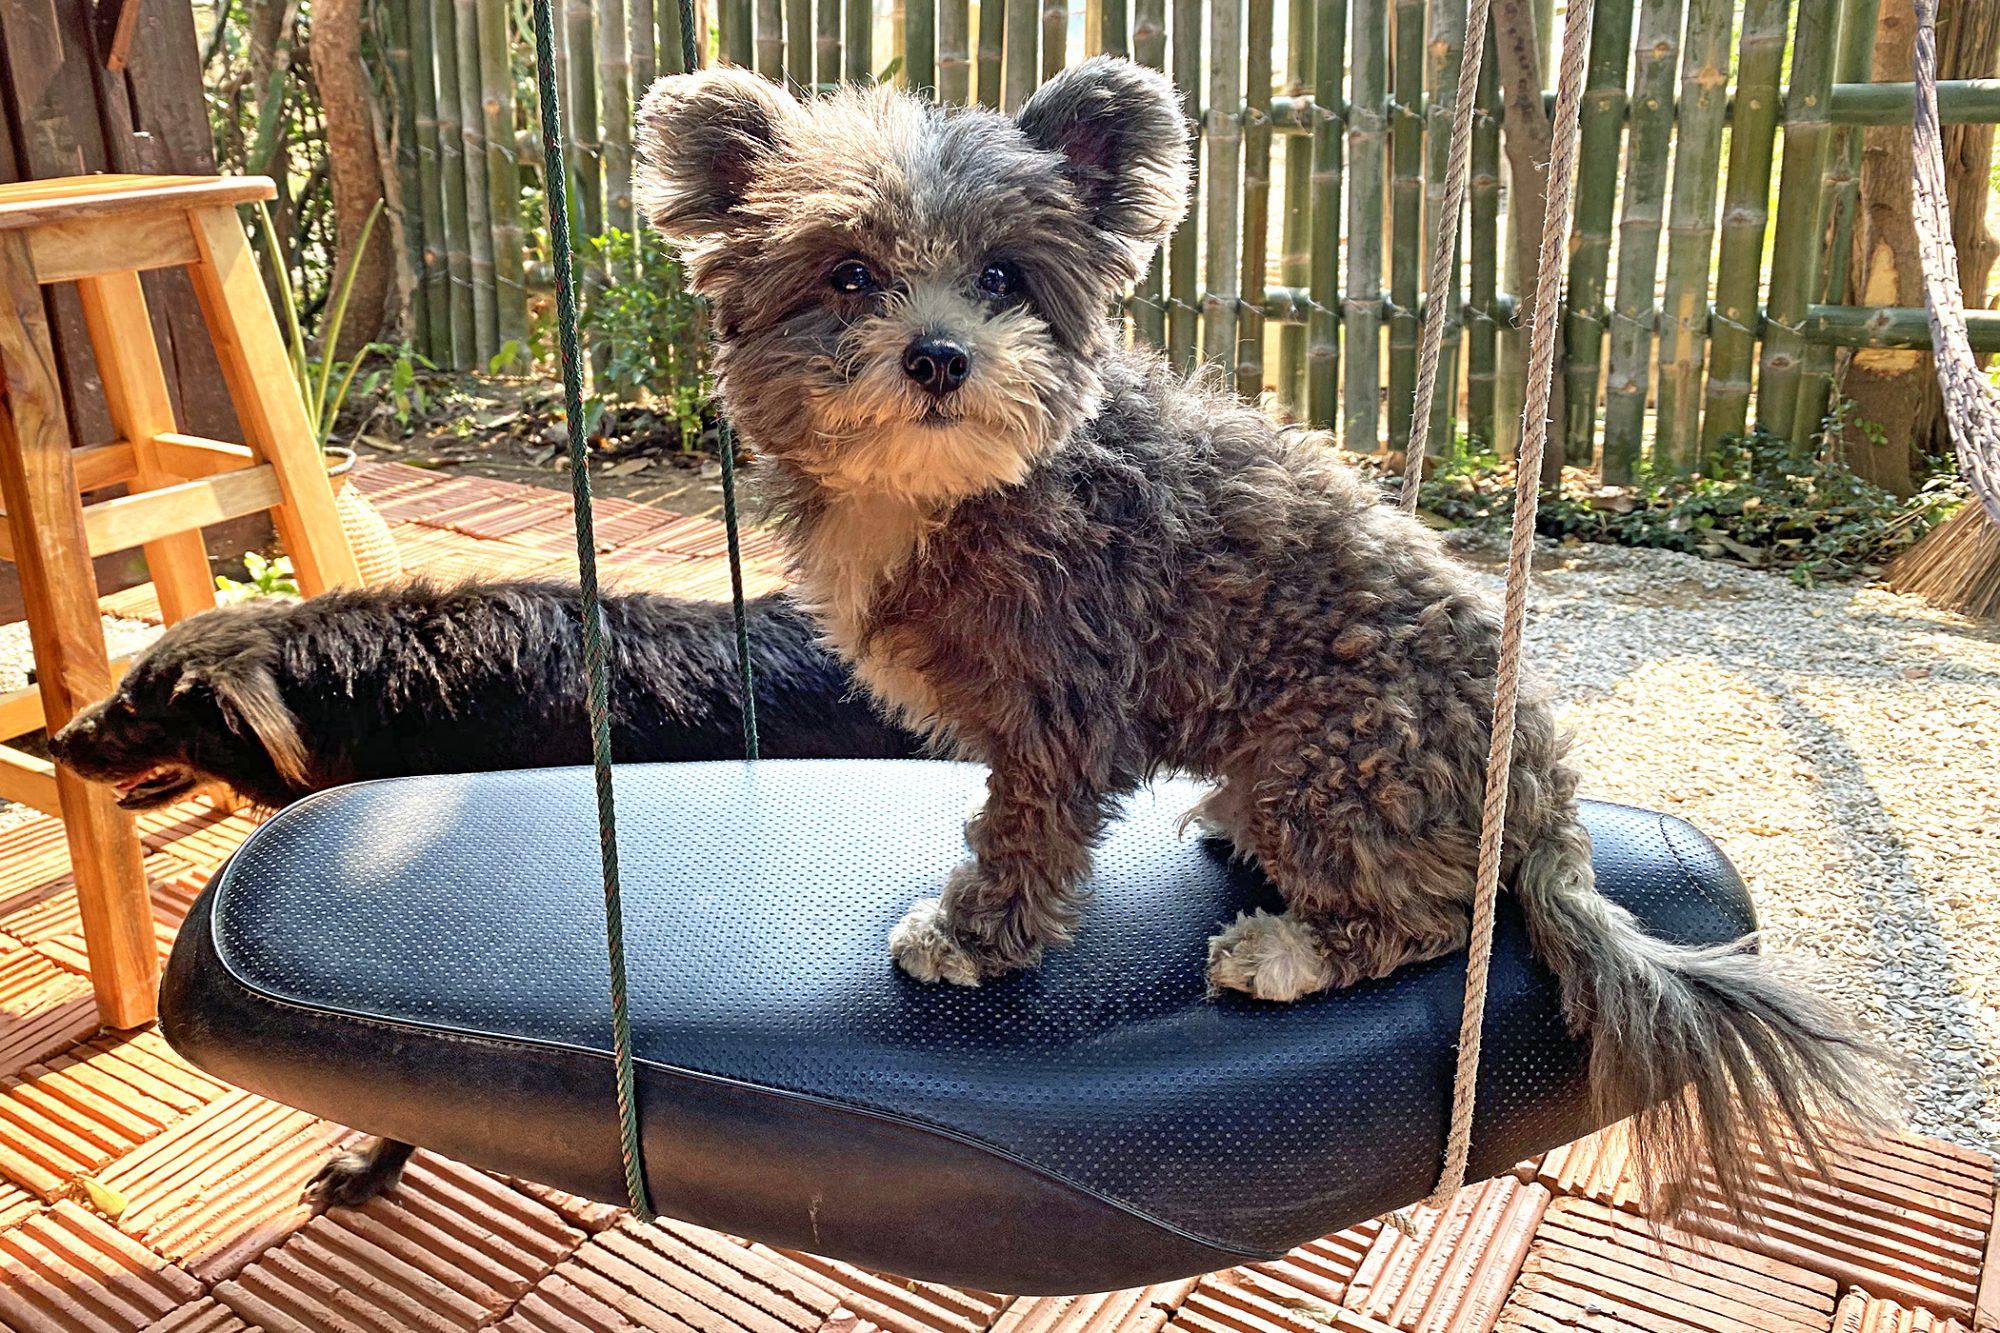 Grey and white Pomapoo sitting on swing